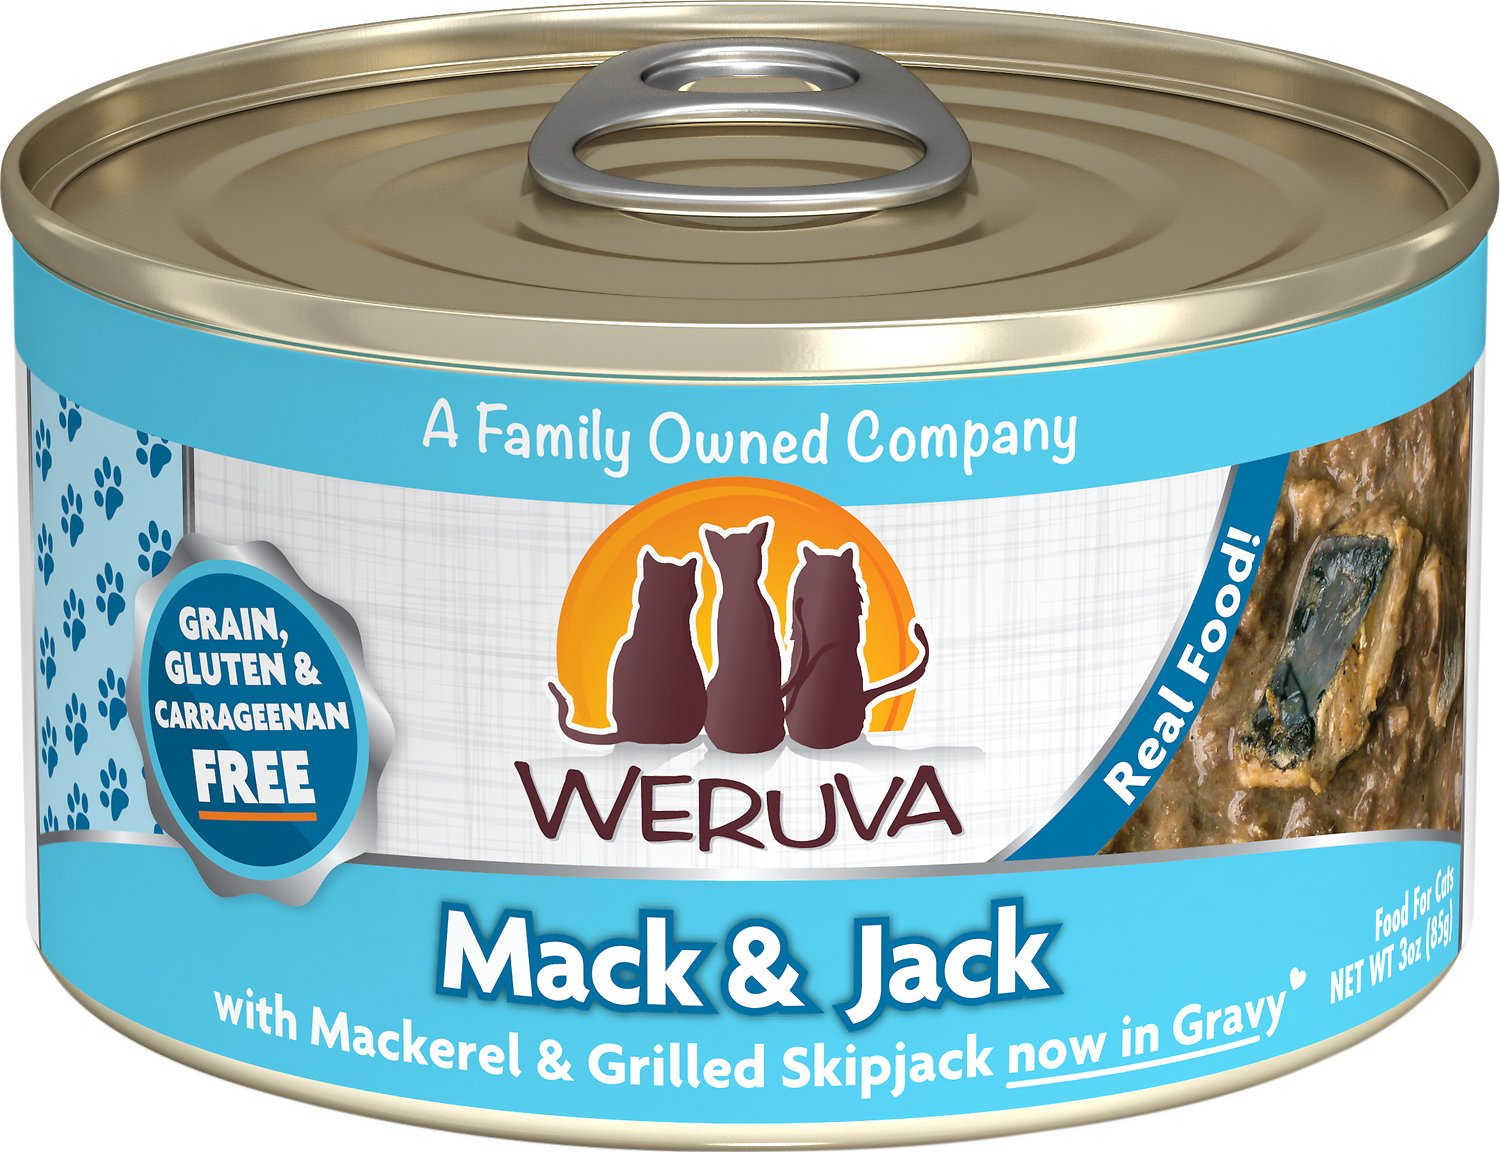 Weruva Cat Classic Mack and Jack with Mackerel & Grilled Skipjack Grain-Free Wet Cat Food Image